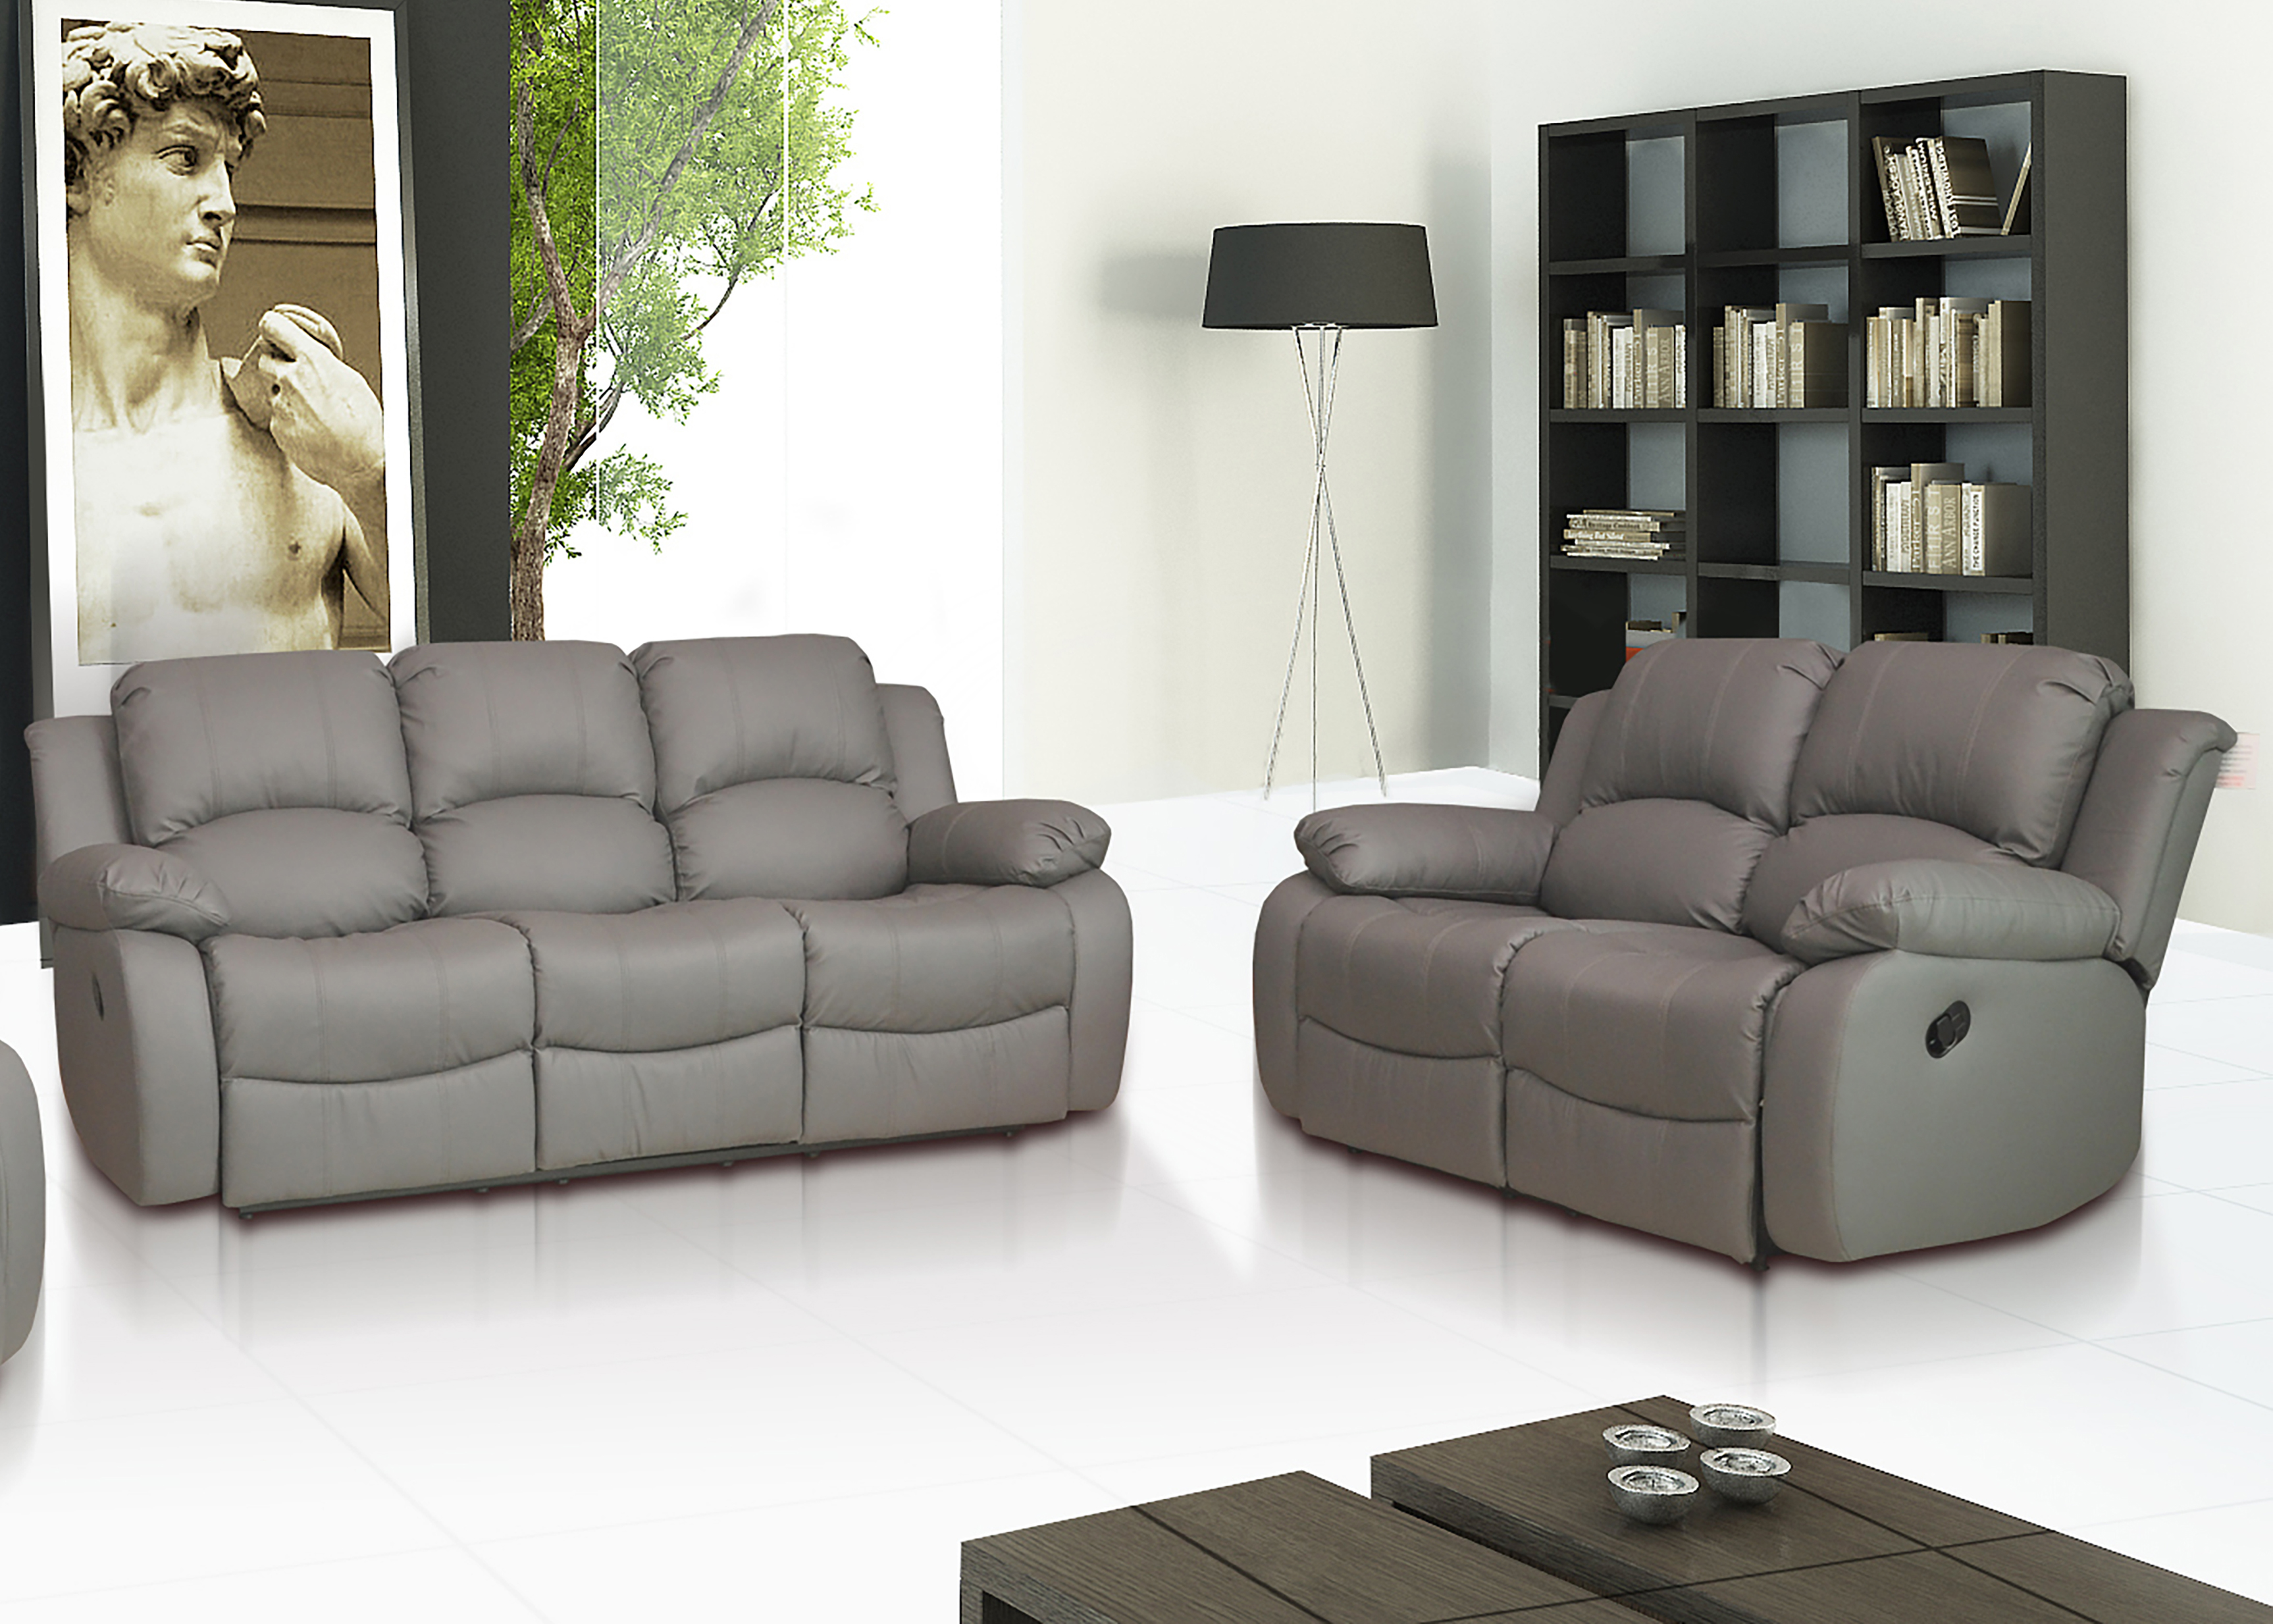 Leather Recliner Sofa 3 2 Milan Leather Recliner Sofa 3